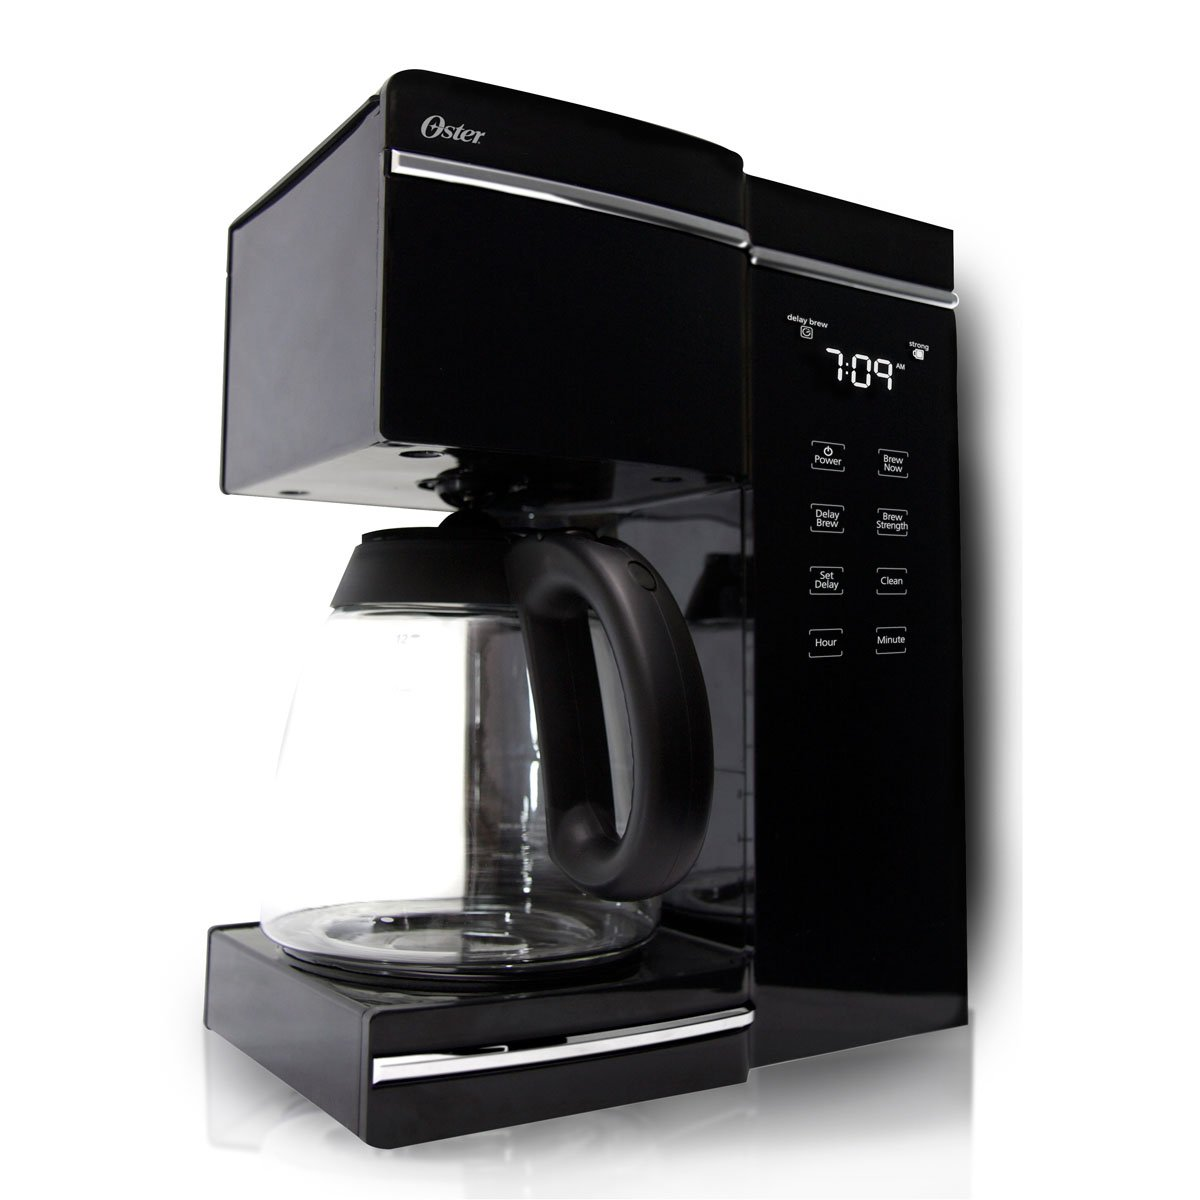 oster 12 cup 3306-33 programmable coffee maker manual